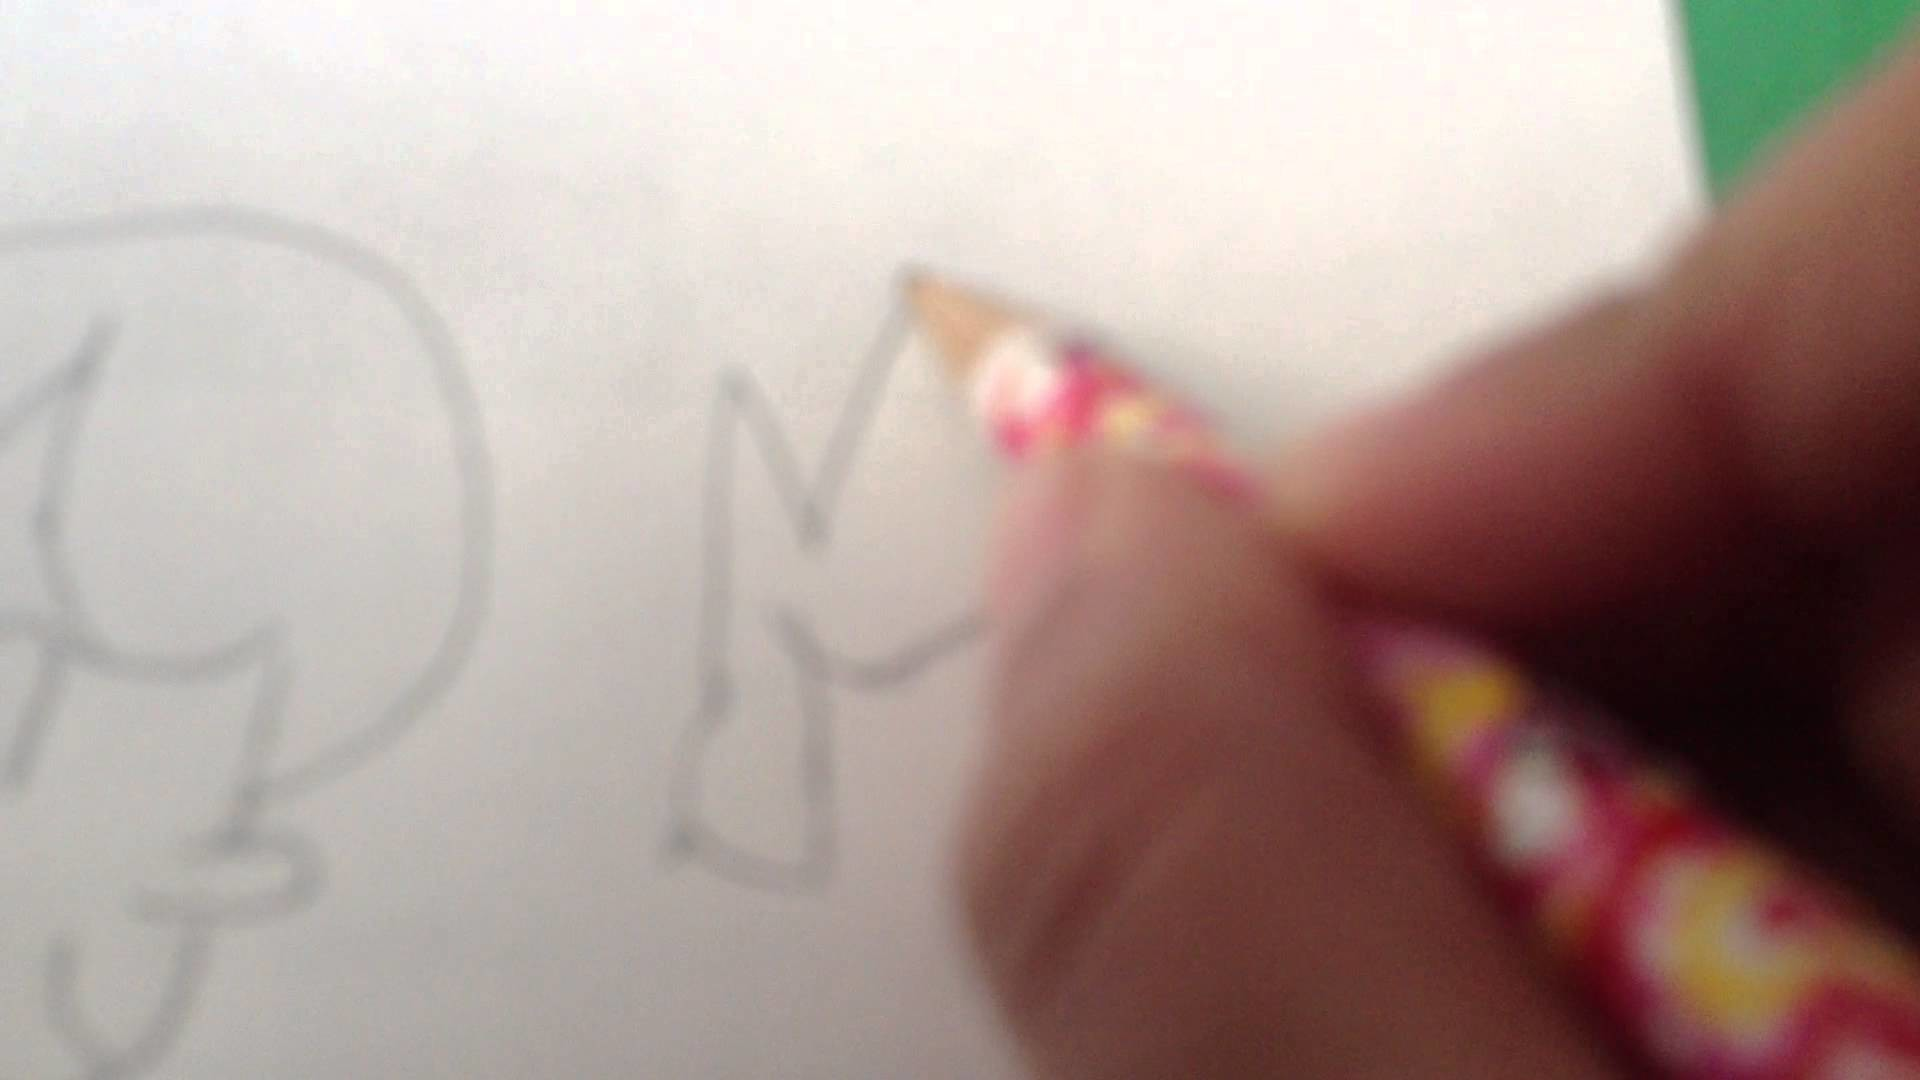 How to draw a girl super hero and a robber step by step for kids